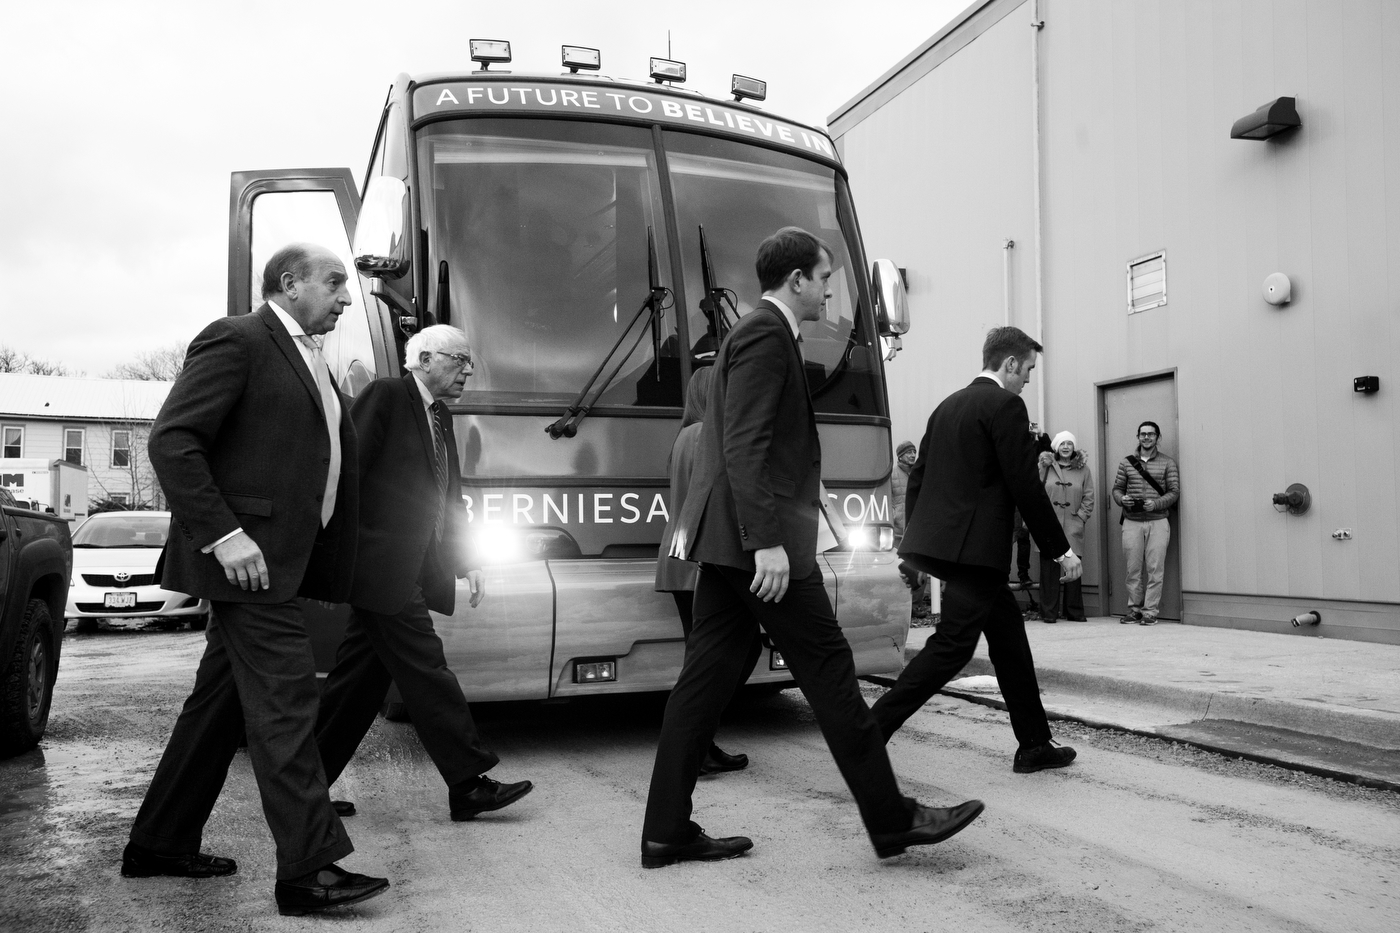 Democratic presidential candidate Bernie Sanders arrives with staff at a rally in Fairfield, Iowa on January 28, four days before the Iowa caucuses.